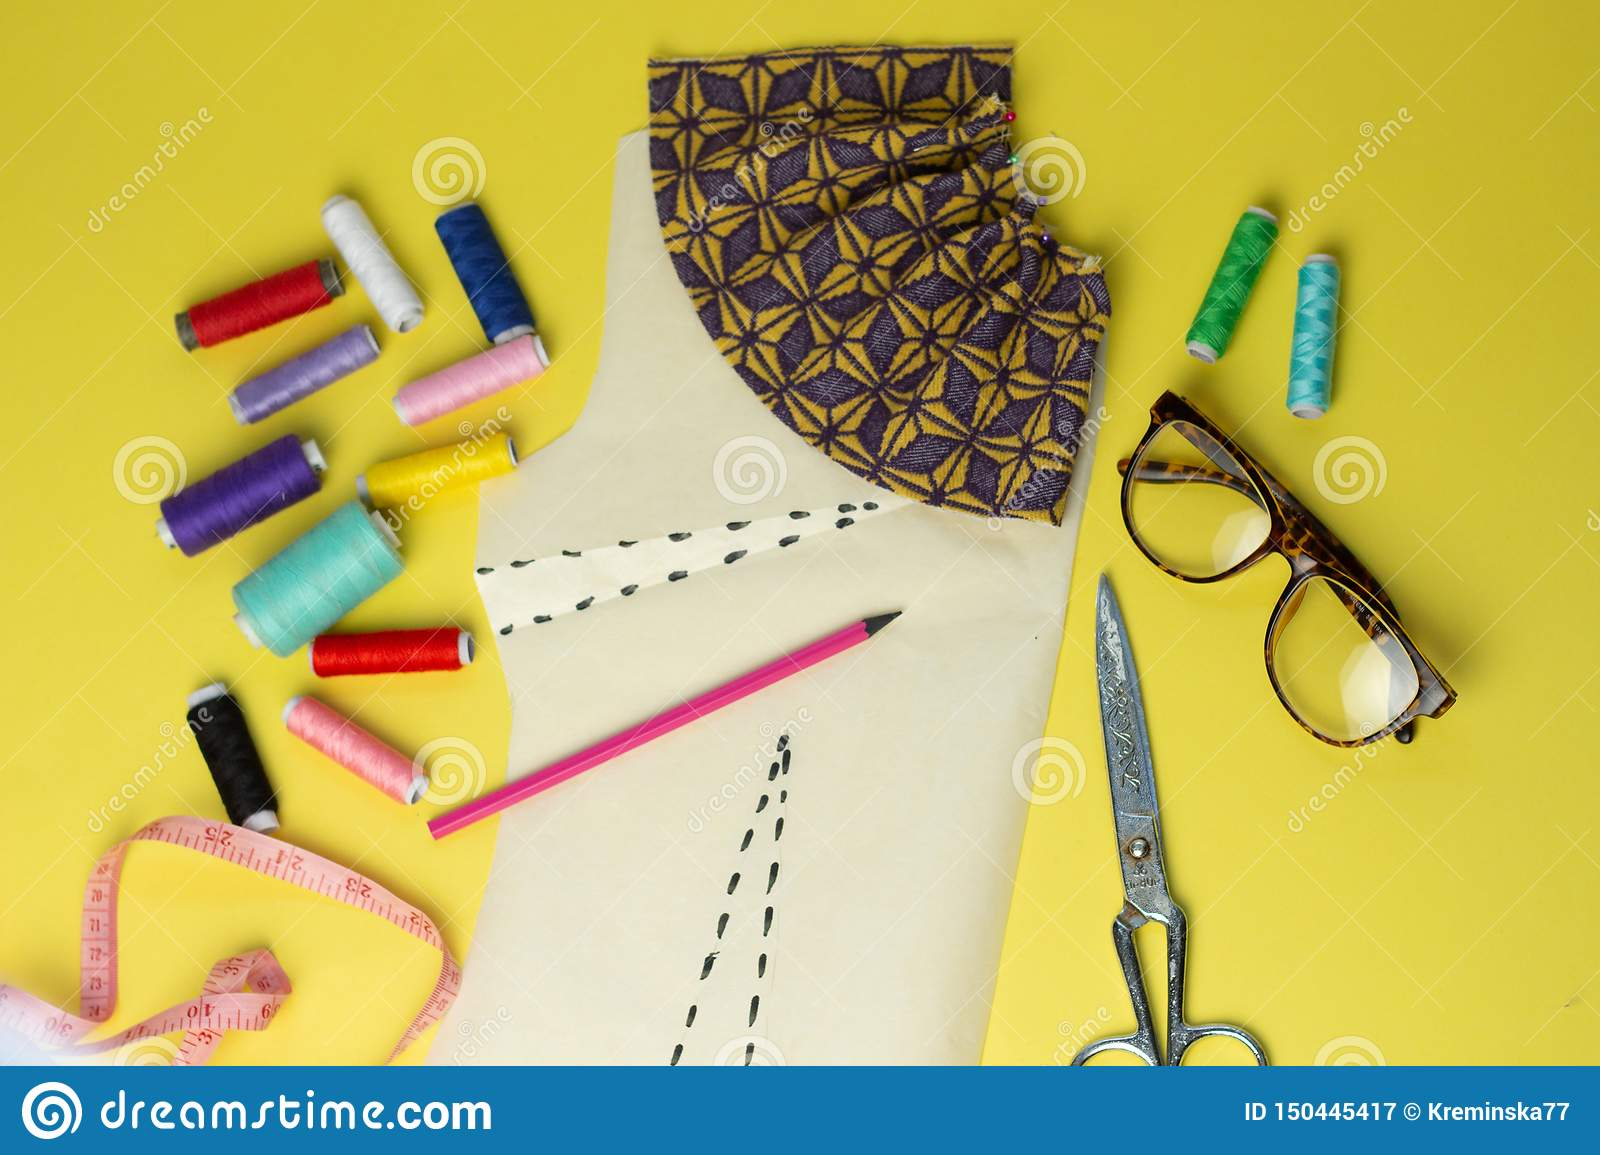 Sewing accessories and fabric on a yelow background. Sewing threads, pins, pattern and sewing centimeter. For sewing at home.Top